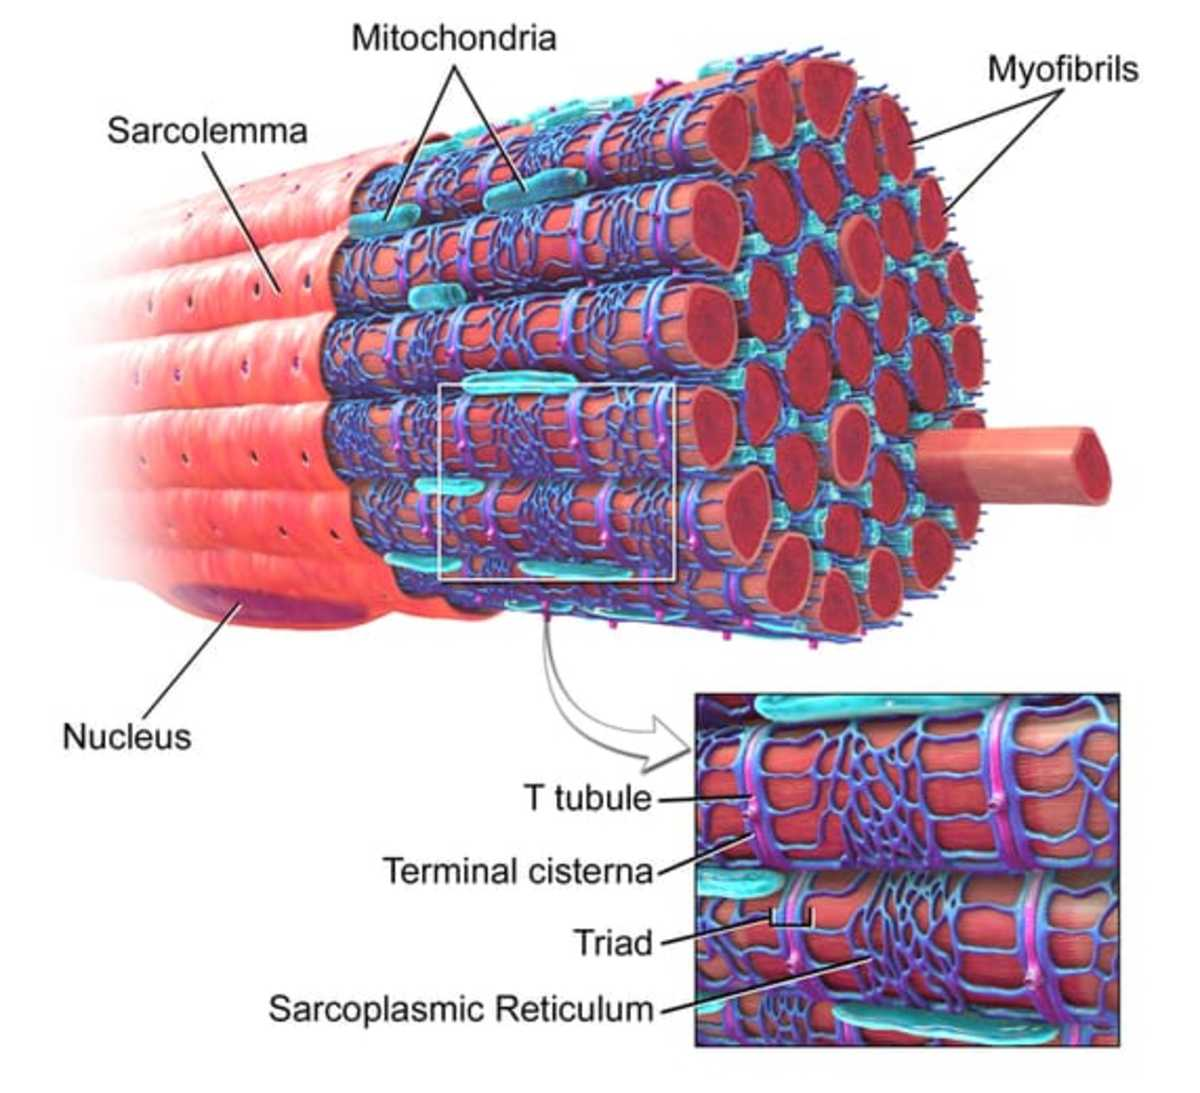 This is the structure of a skeletal muscle fibre. Look at how T-tubules are surfaced all over it. These are responsible for spreading the contraction throughout the muscle fibre.